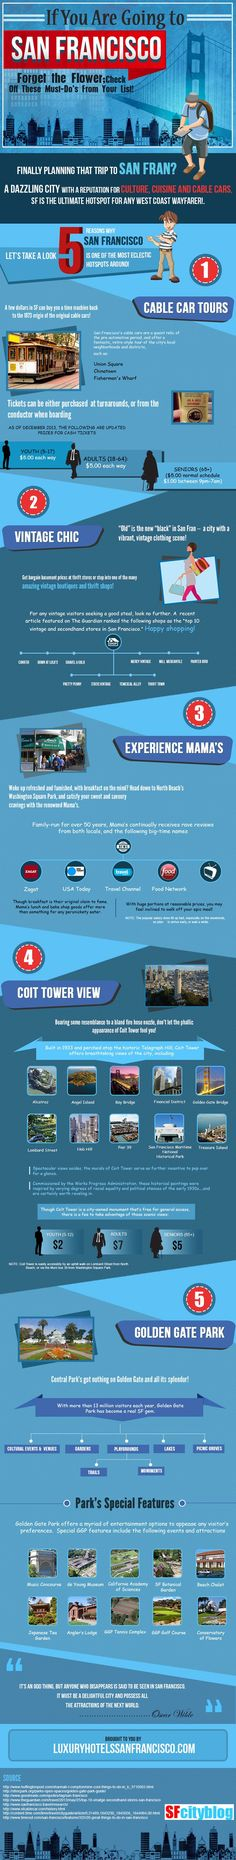 If You Are Going To San Francisco #SanFrancisco #Travel | #infographics repinned by @Piktochart